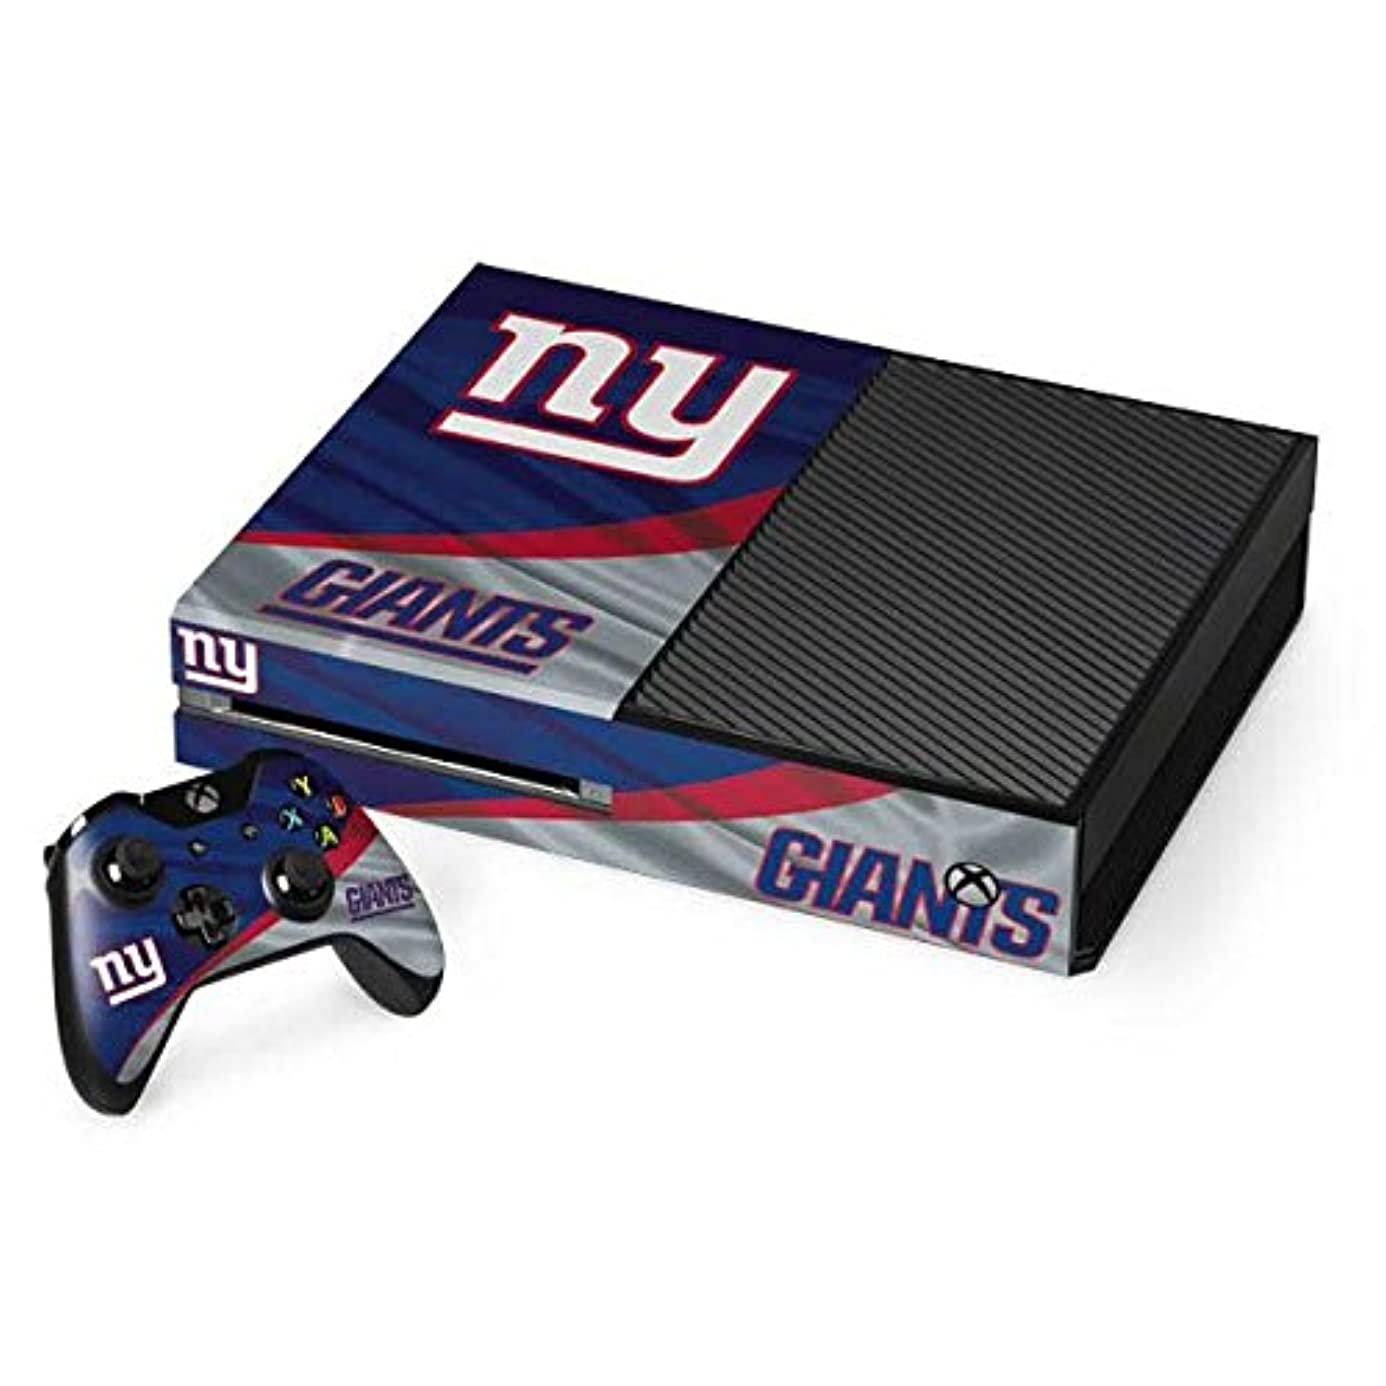 Skinit NFL New York Giants Xbox One Console and Controller Bundle Skin - New York Giants Design - Ultra Thin, Lightweight Vinyl Decal Protection